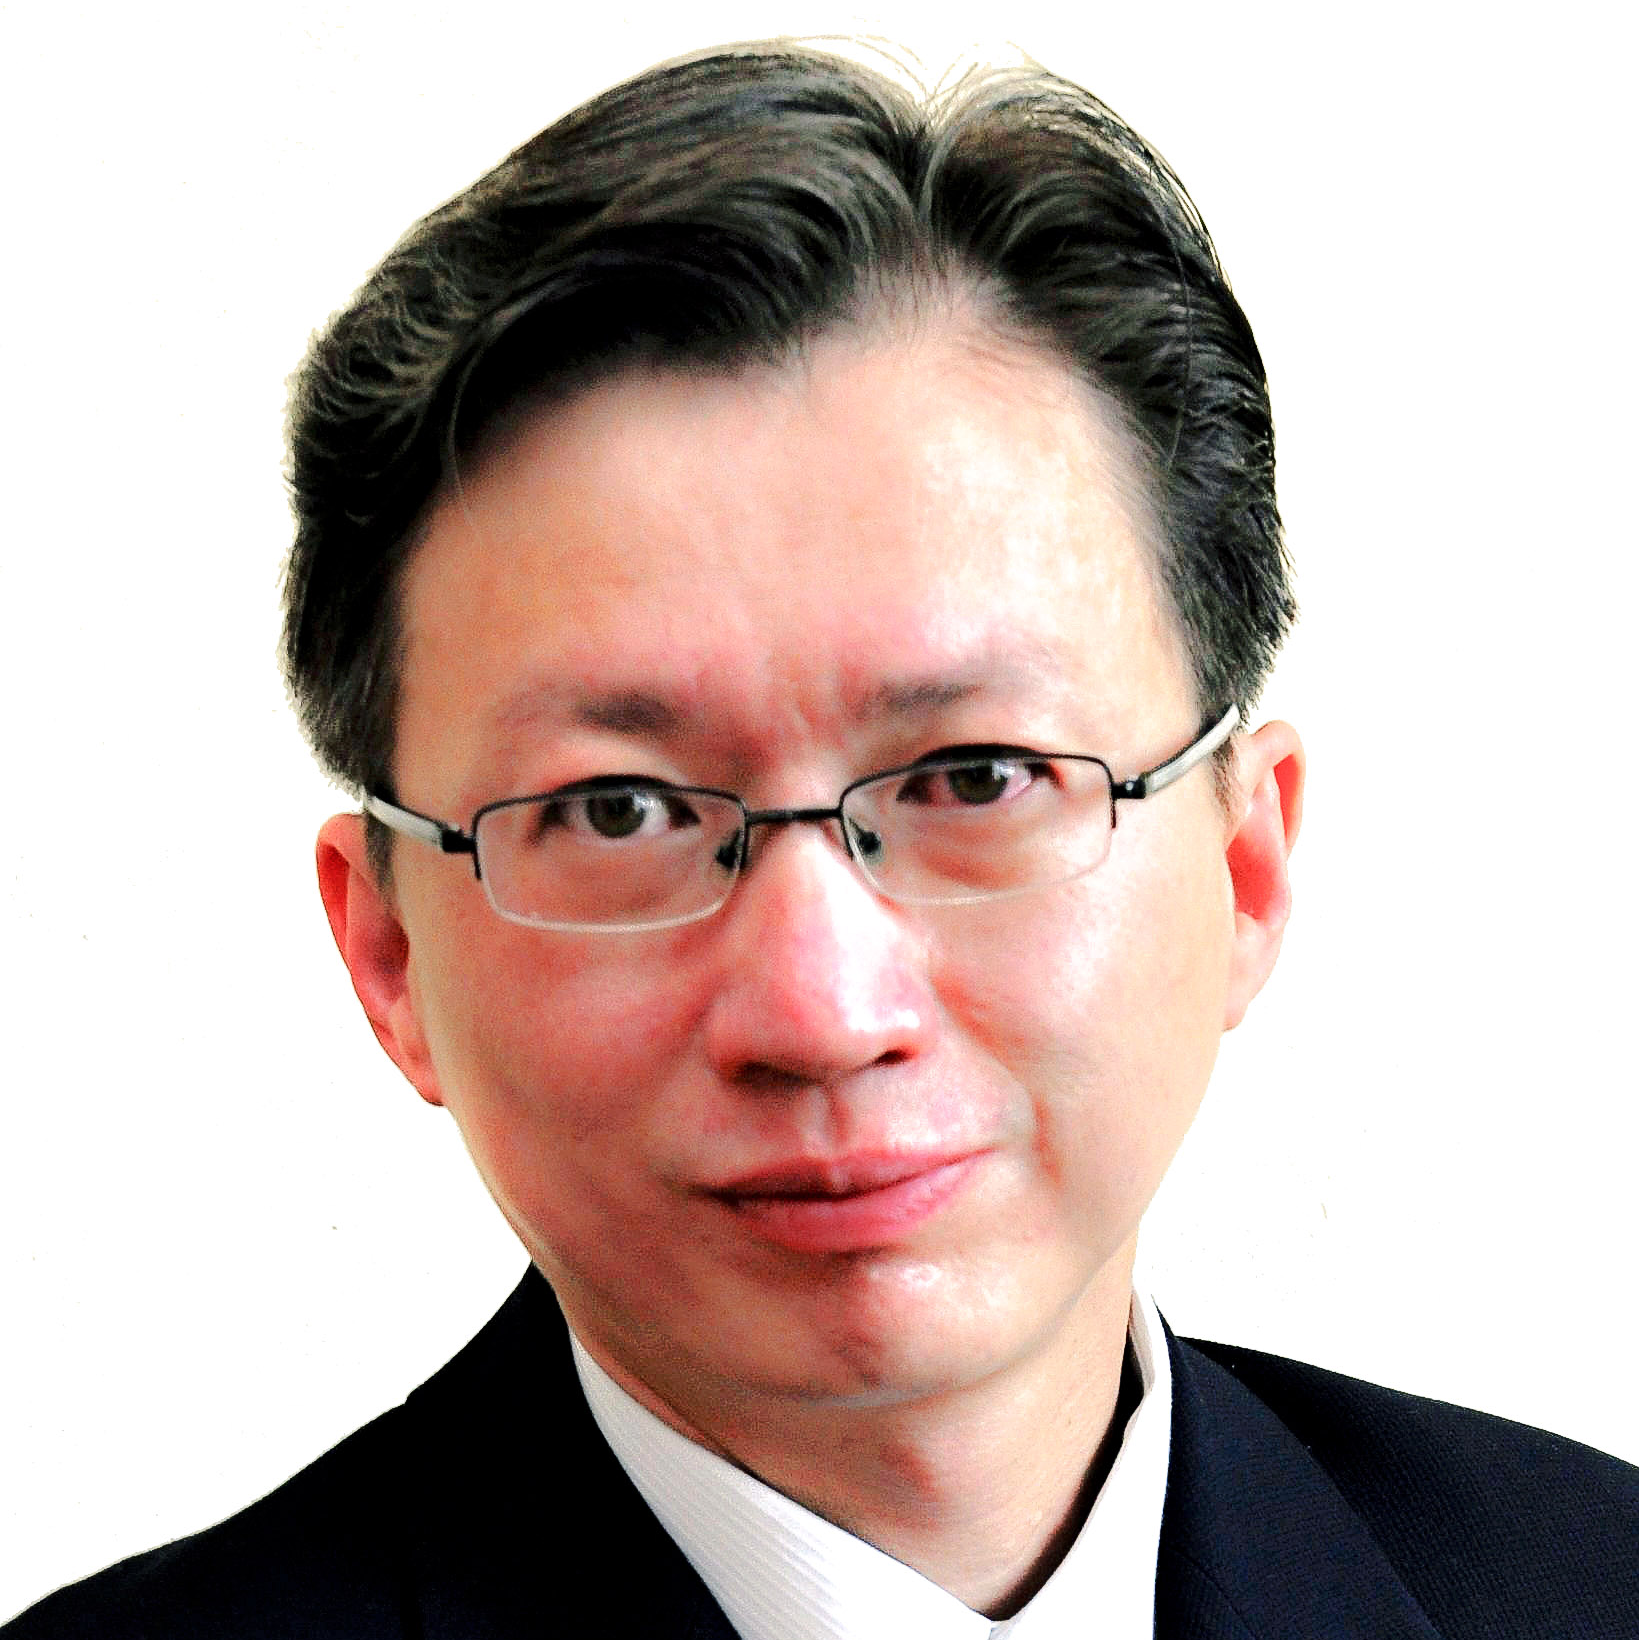 Mr Wee Seng Lim, Executive Director - Satellite Research Centre at Nanyang Technology University (NTU)